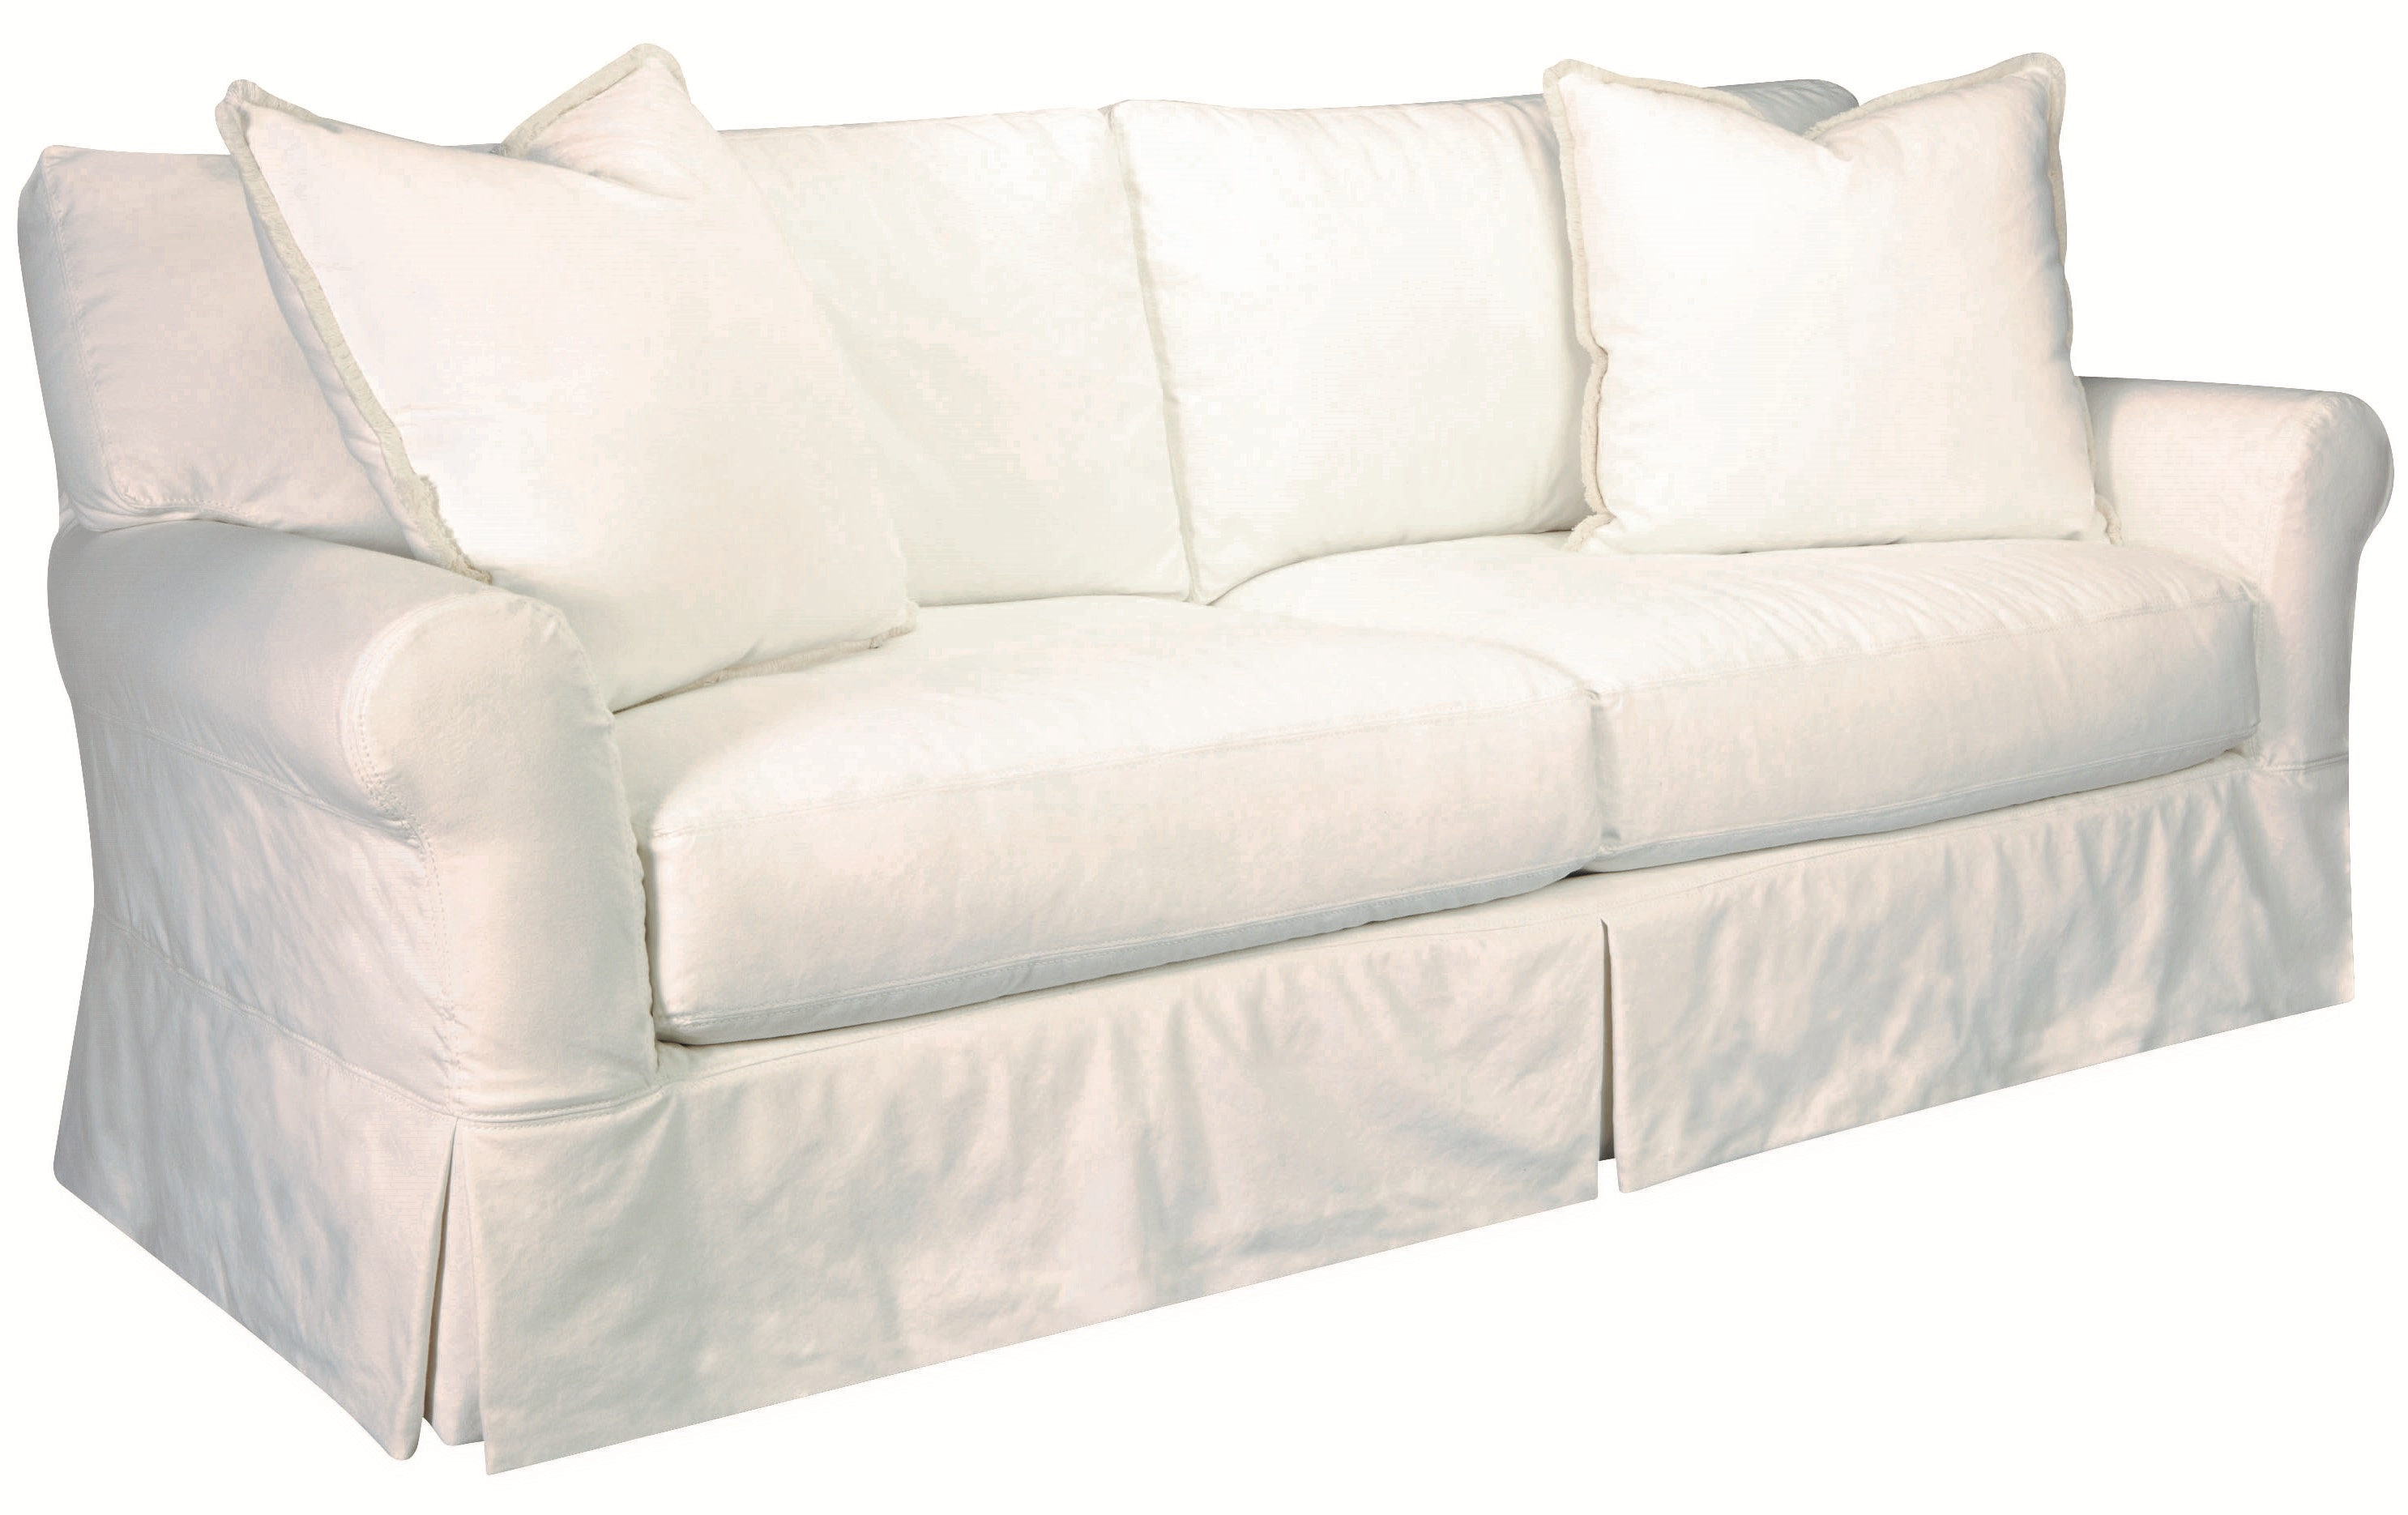 Slipcovered Sofa Trendy Mayfair Slipcovered Sofa With Chaise